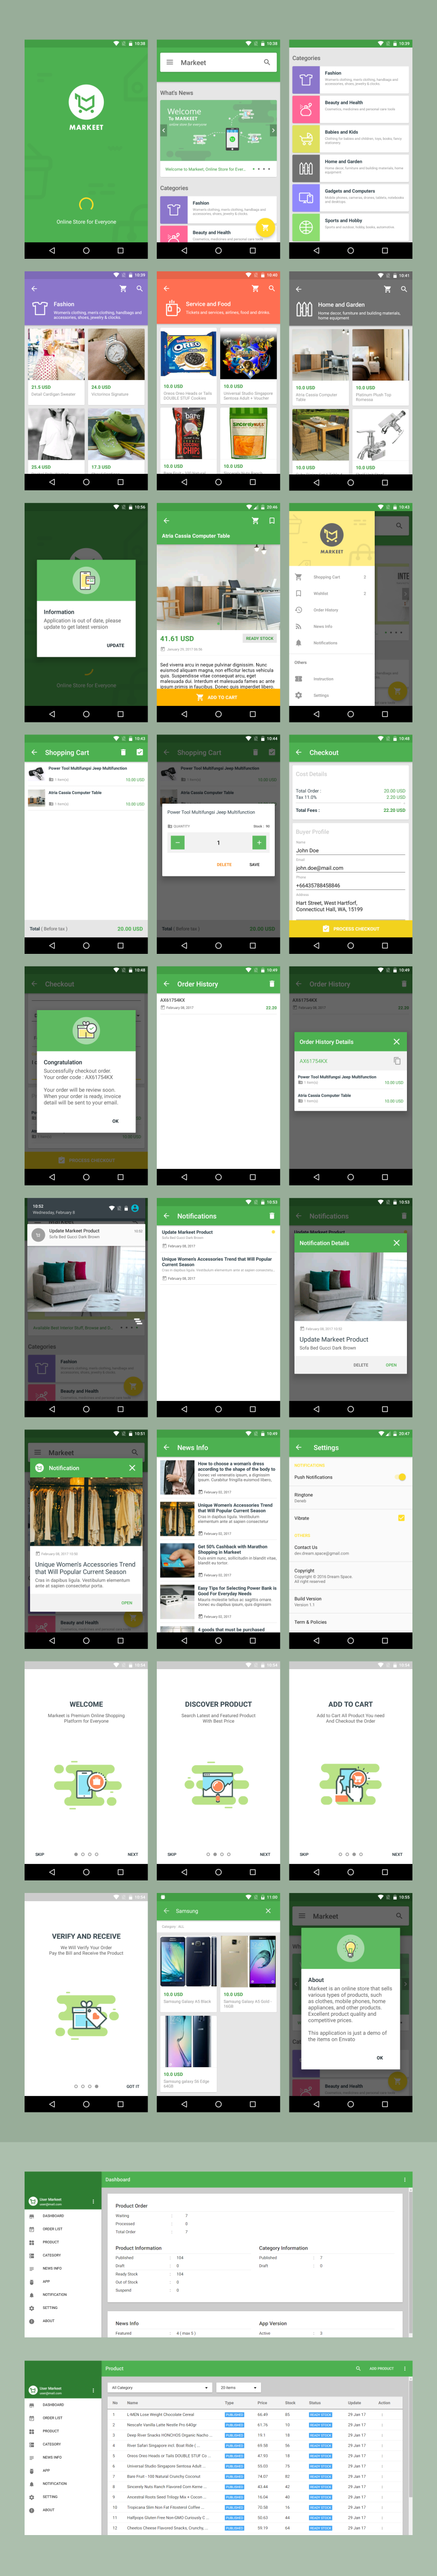 Markeet - Android Online Store 2.3 - 6